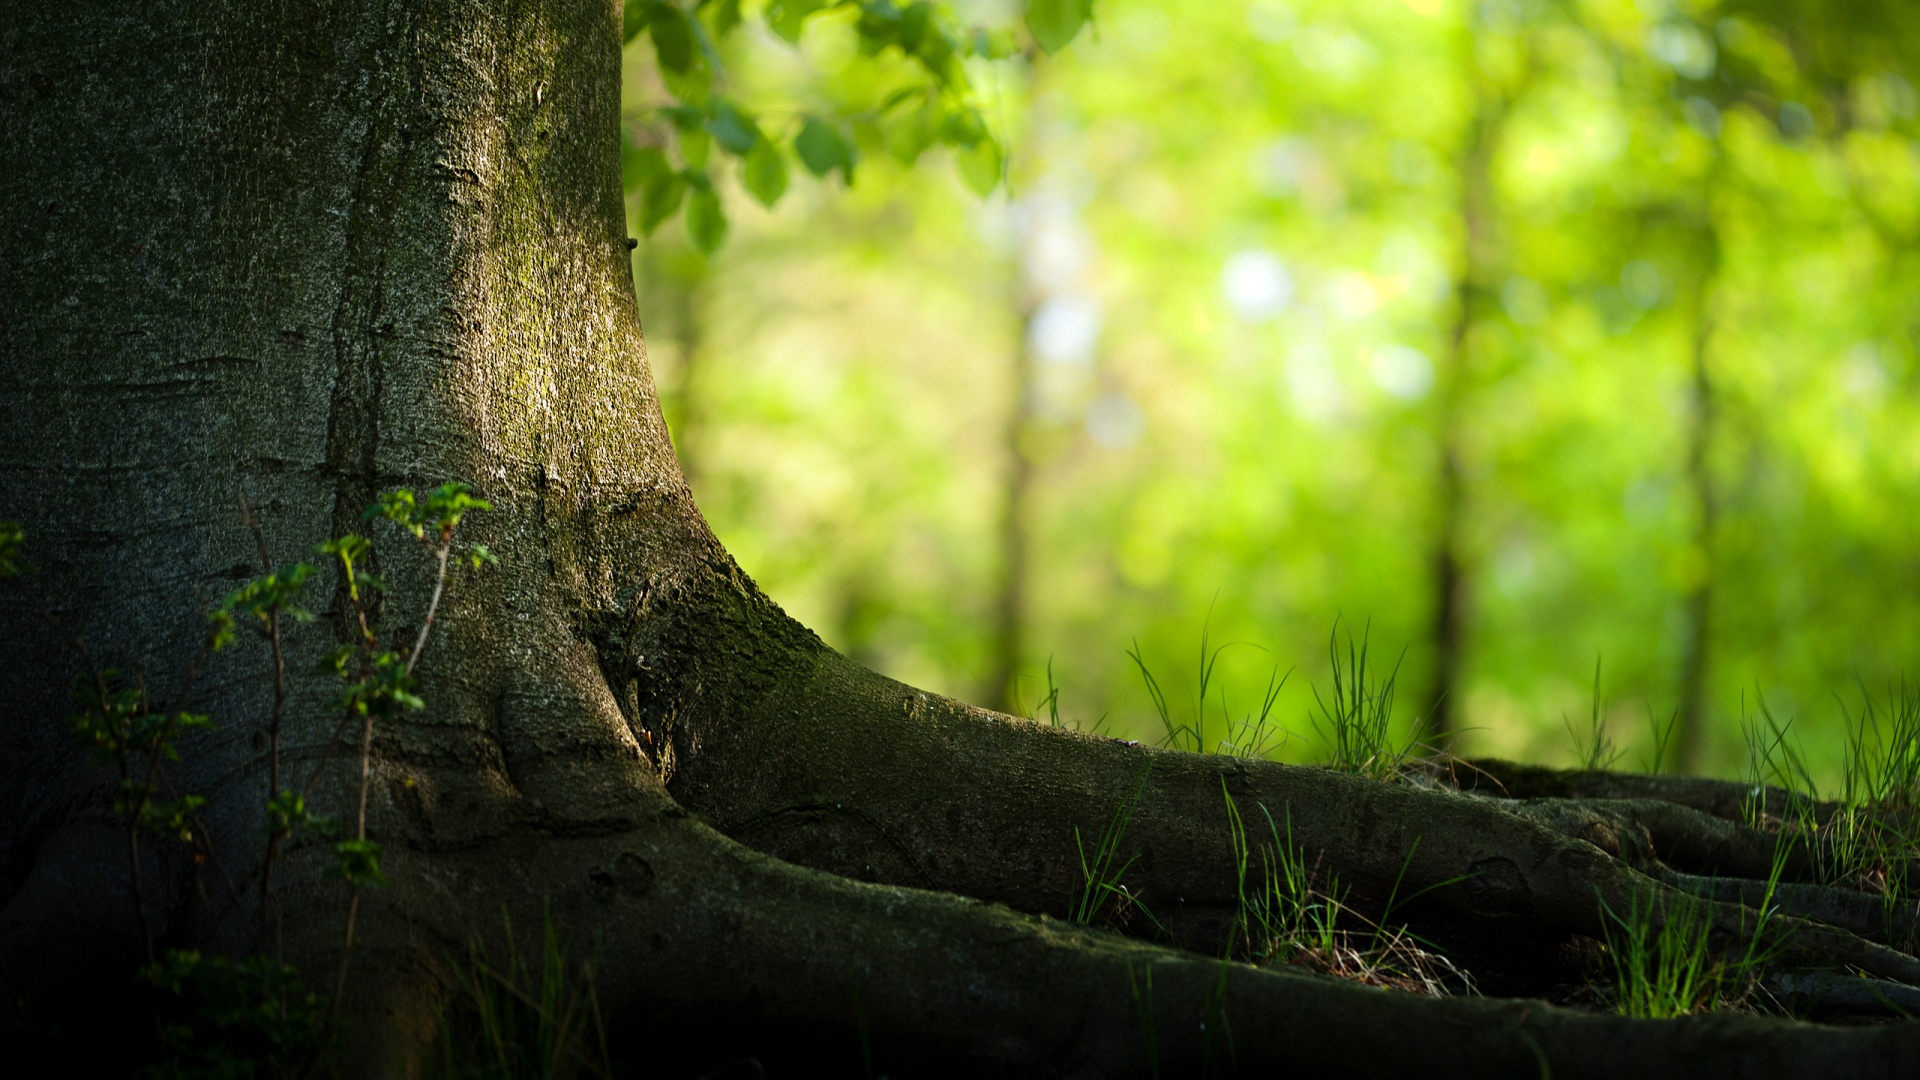 green forest wallpapers green forest wallpapers green forest hd 1920x1080